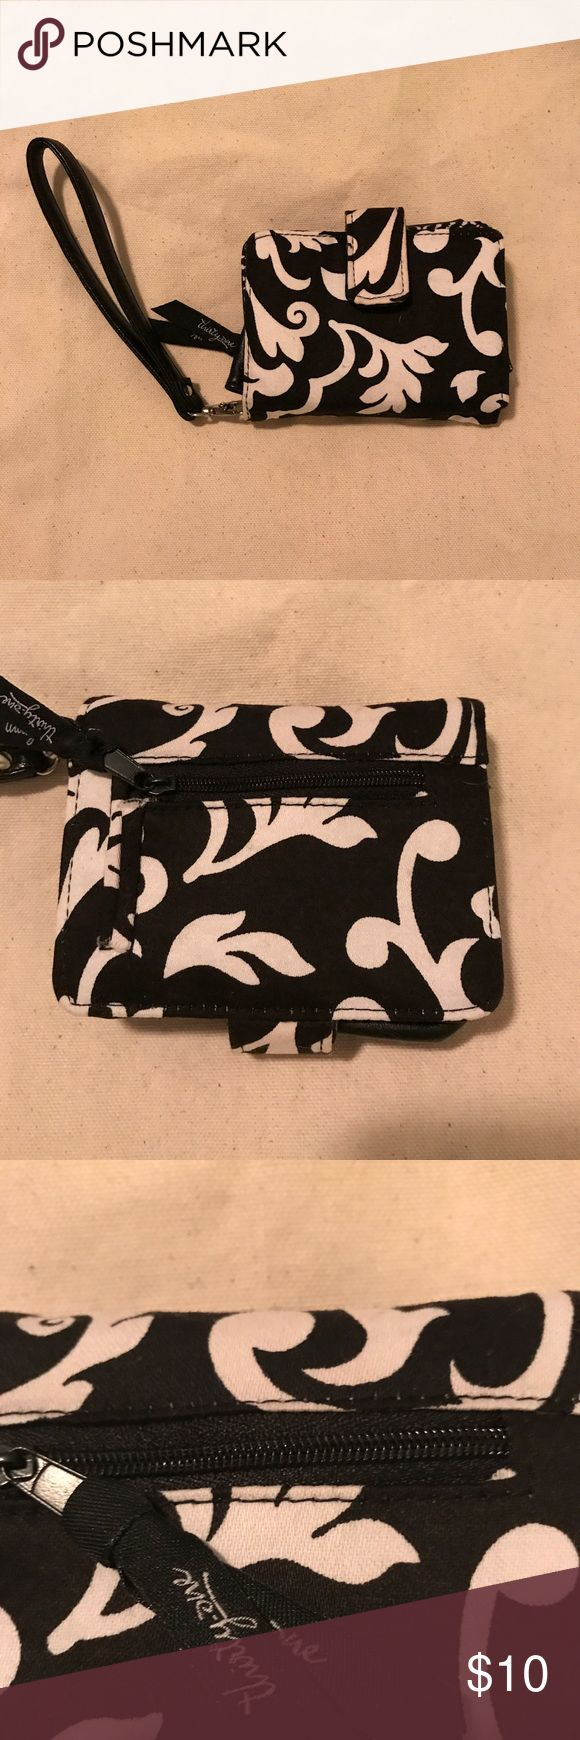 Thirty One Black and White Wallet EUC no flaws. Very versatile and cute! Thirty One Bags Wallets